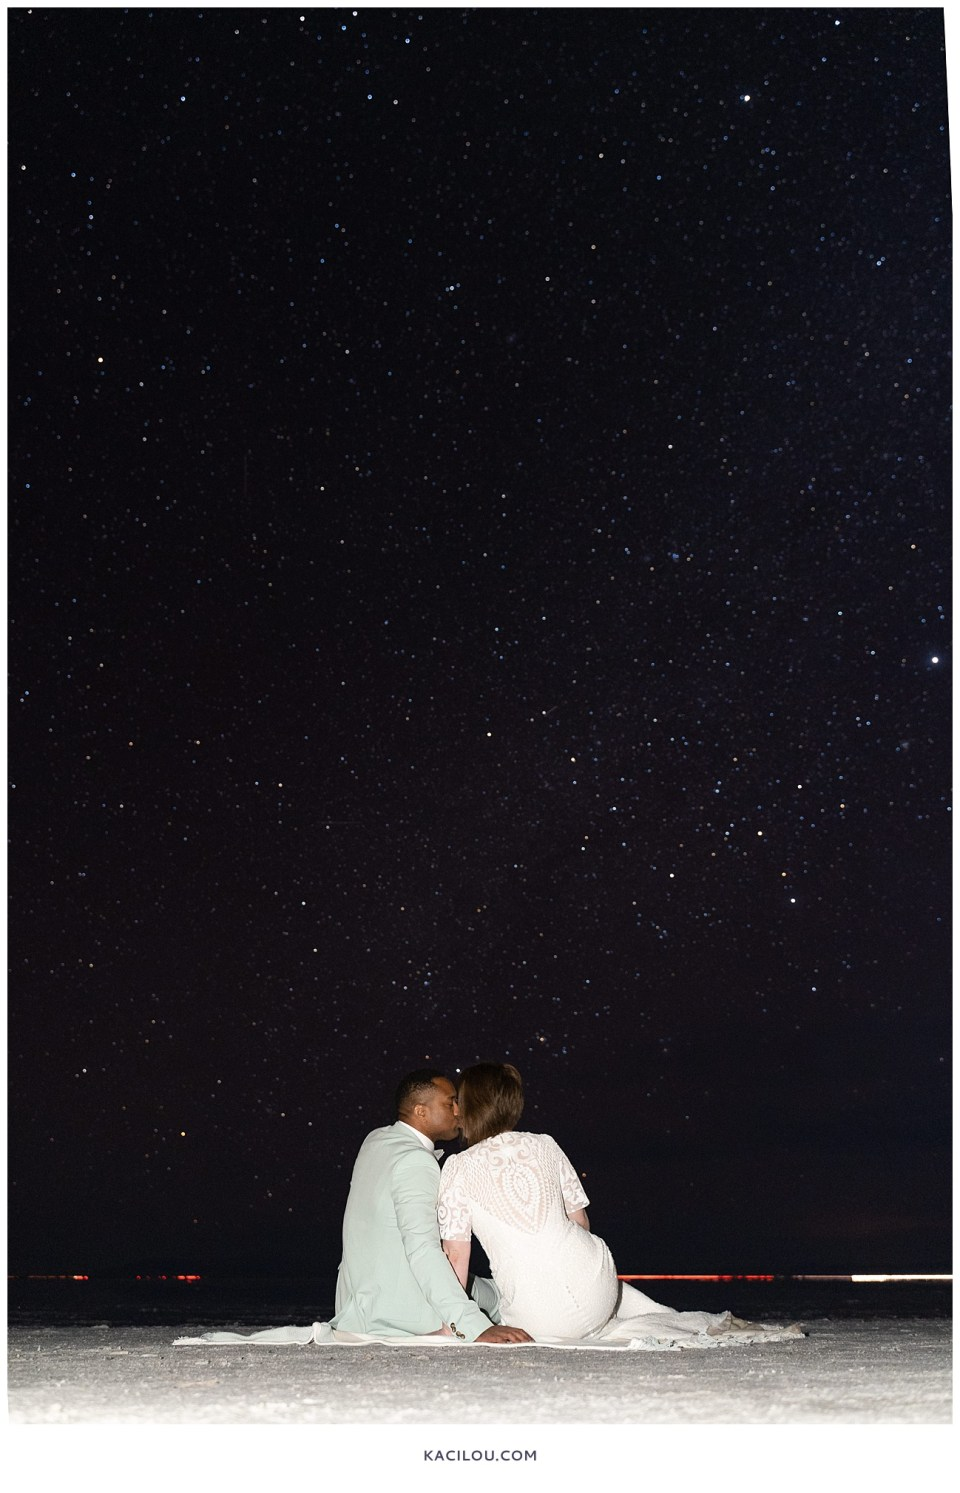 salt flats utah elopement tuesdae and ethan by kaci lou photography-400.jpg